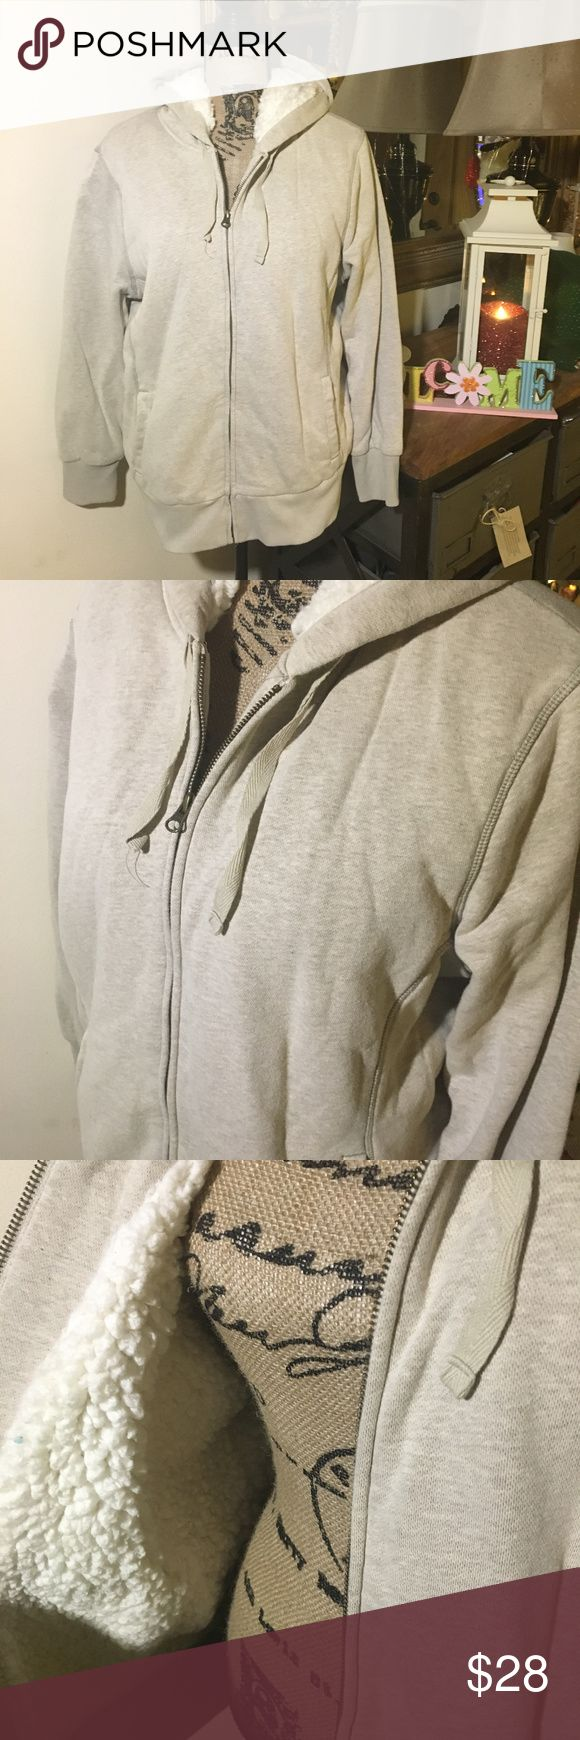 """Old Navy Cream (Beige) Zip Up Hoodie Jacket Old Navy Cream (Beige) Zip Up Hoodie Jacket; this is a super soft and warm hoodie with white """"Sherpa"""" inside; it is gently used and is in overall good condition; size XL Old Navy Jackets & Coats"""